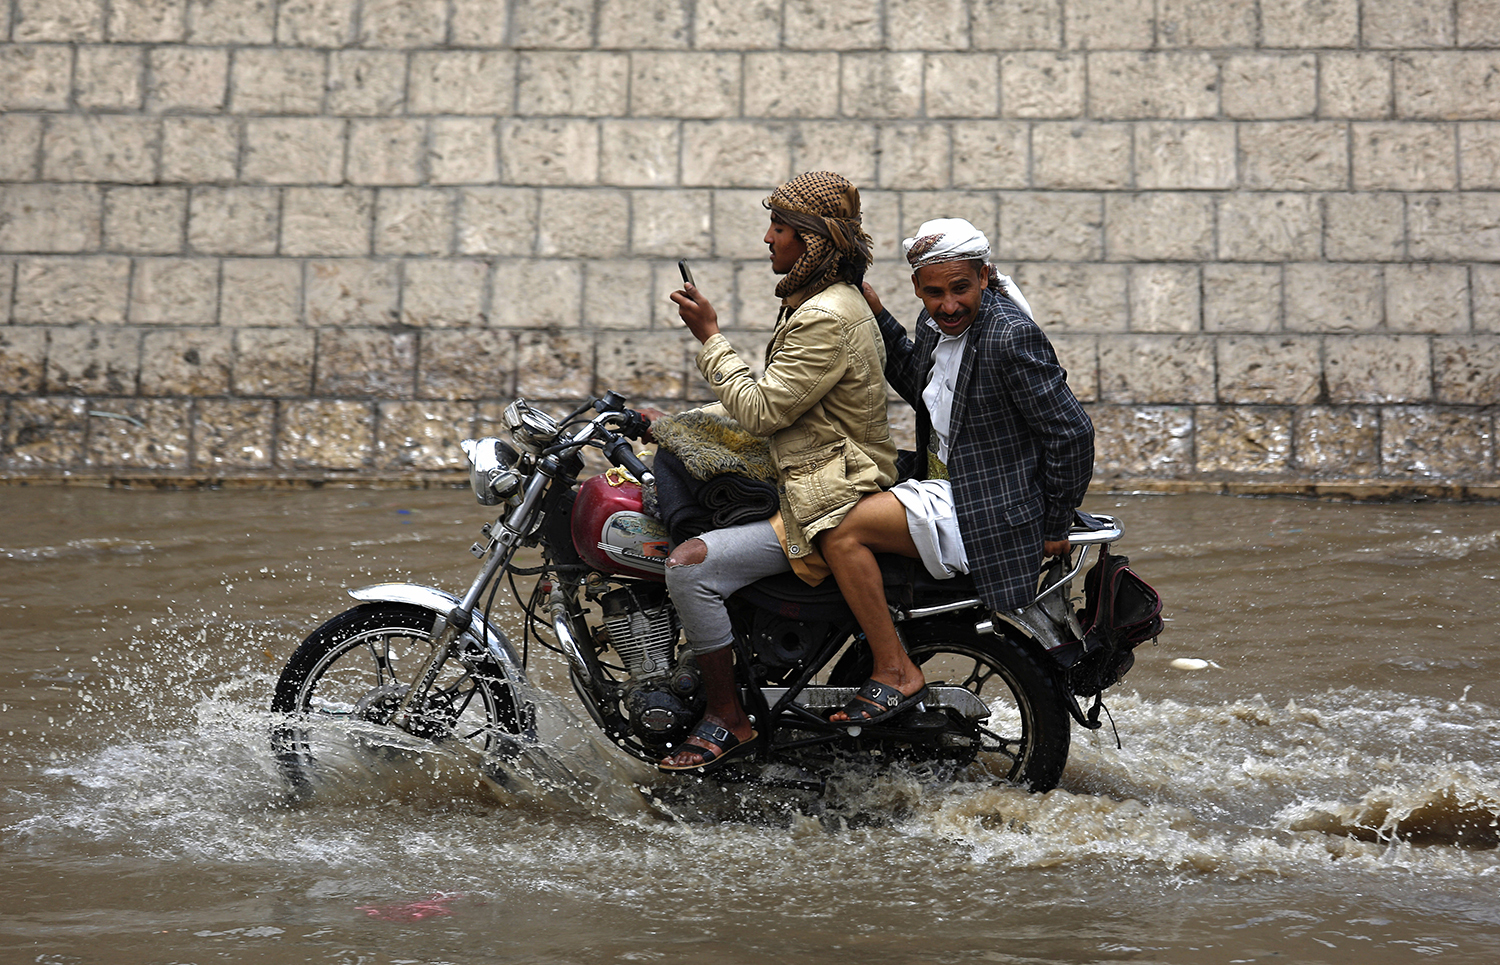 A man looks at his mobile phone while riding a motorcycle in floodwaters on a rainy day in Sanaa, Yemen, Wednesday, April 13, 2016. (AP Photo/Hani Mohammed)